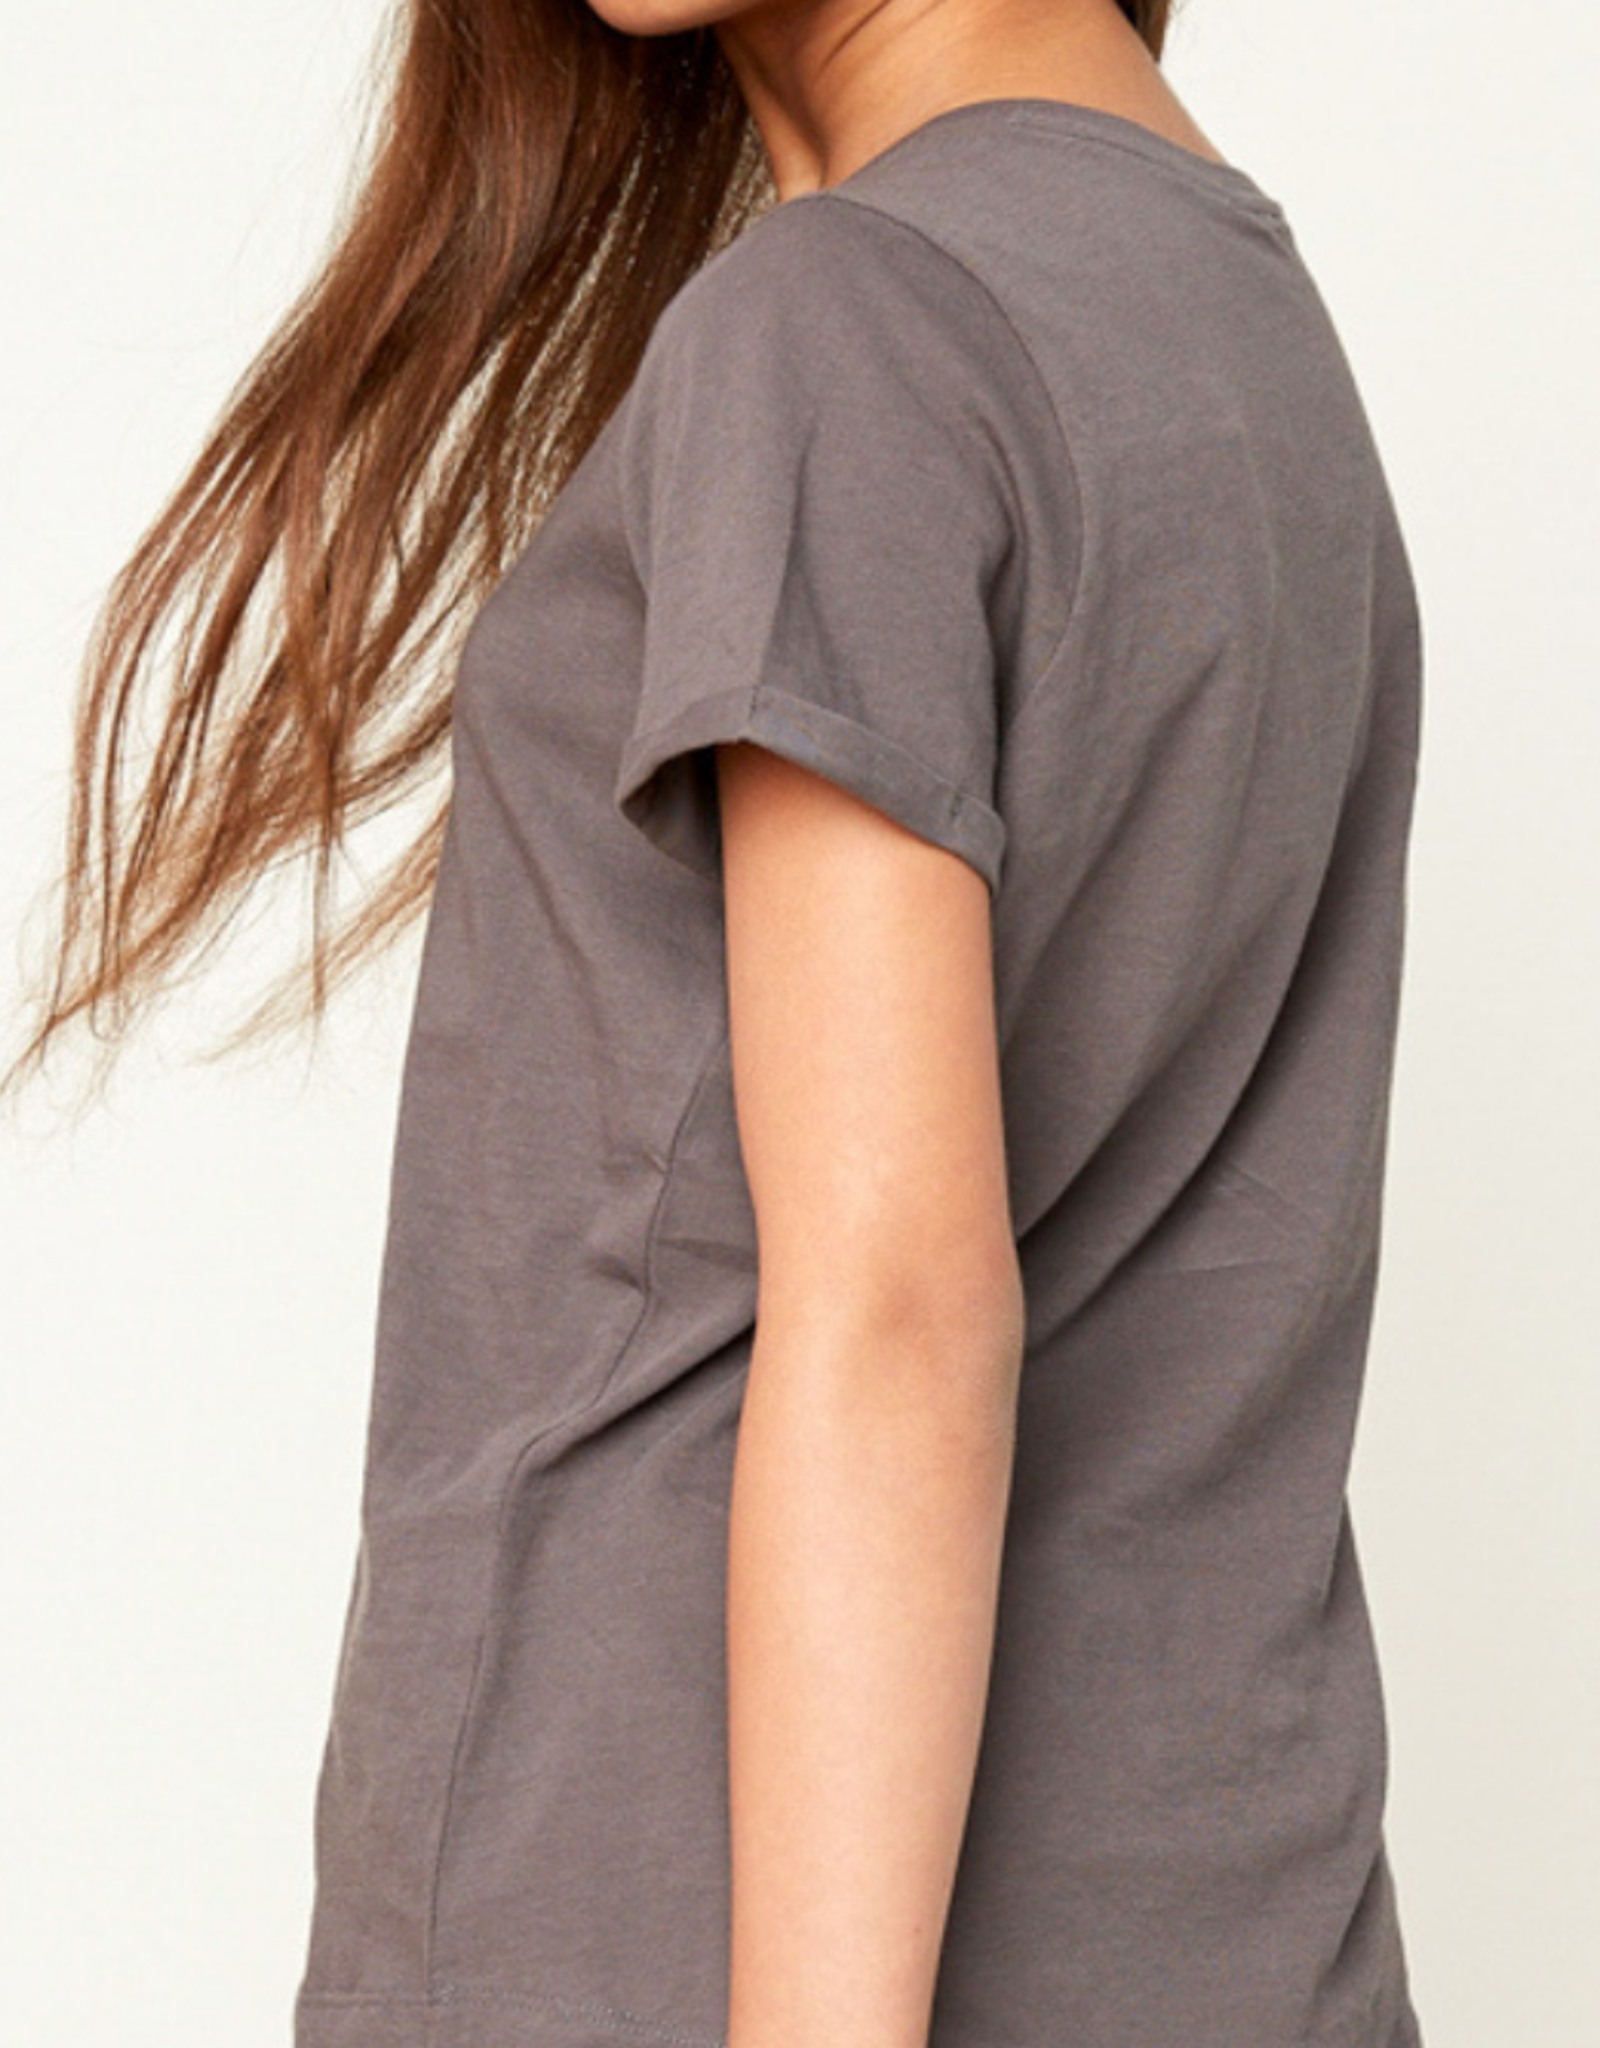 Hayden Girls Hayden Girls Criss Cross T-Shirt - Charcoal